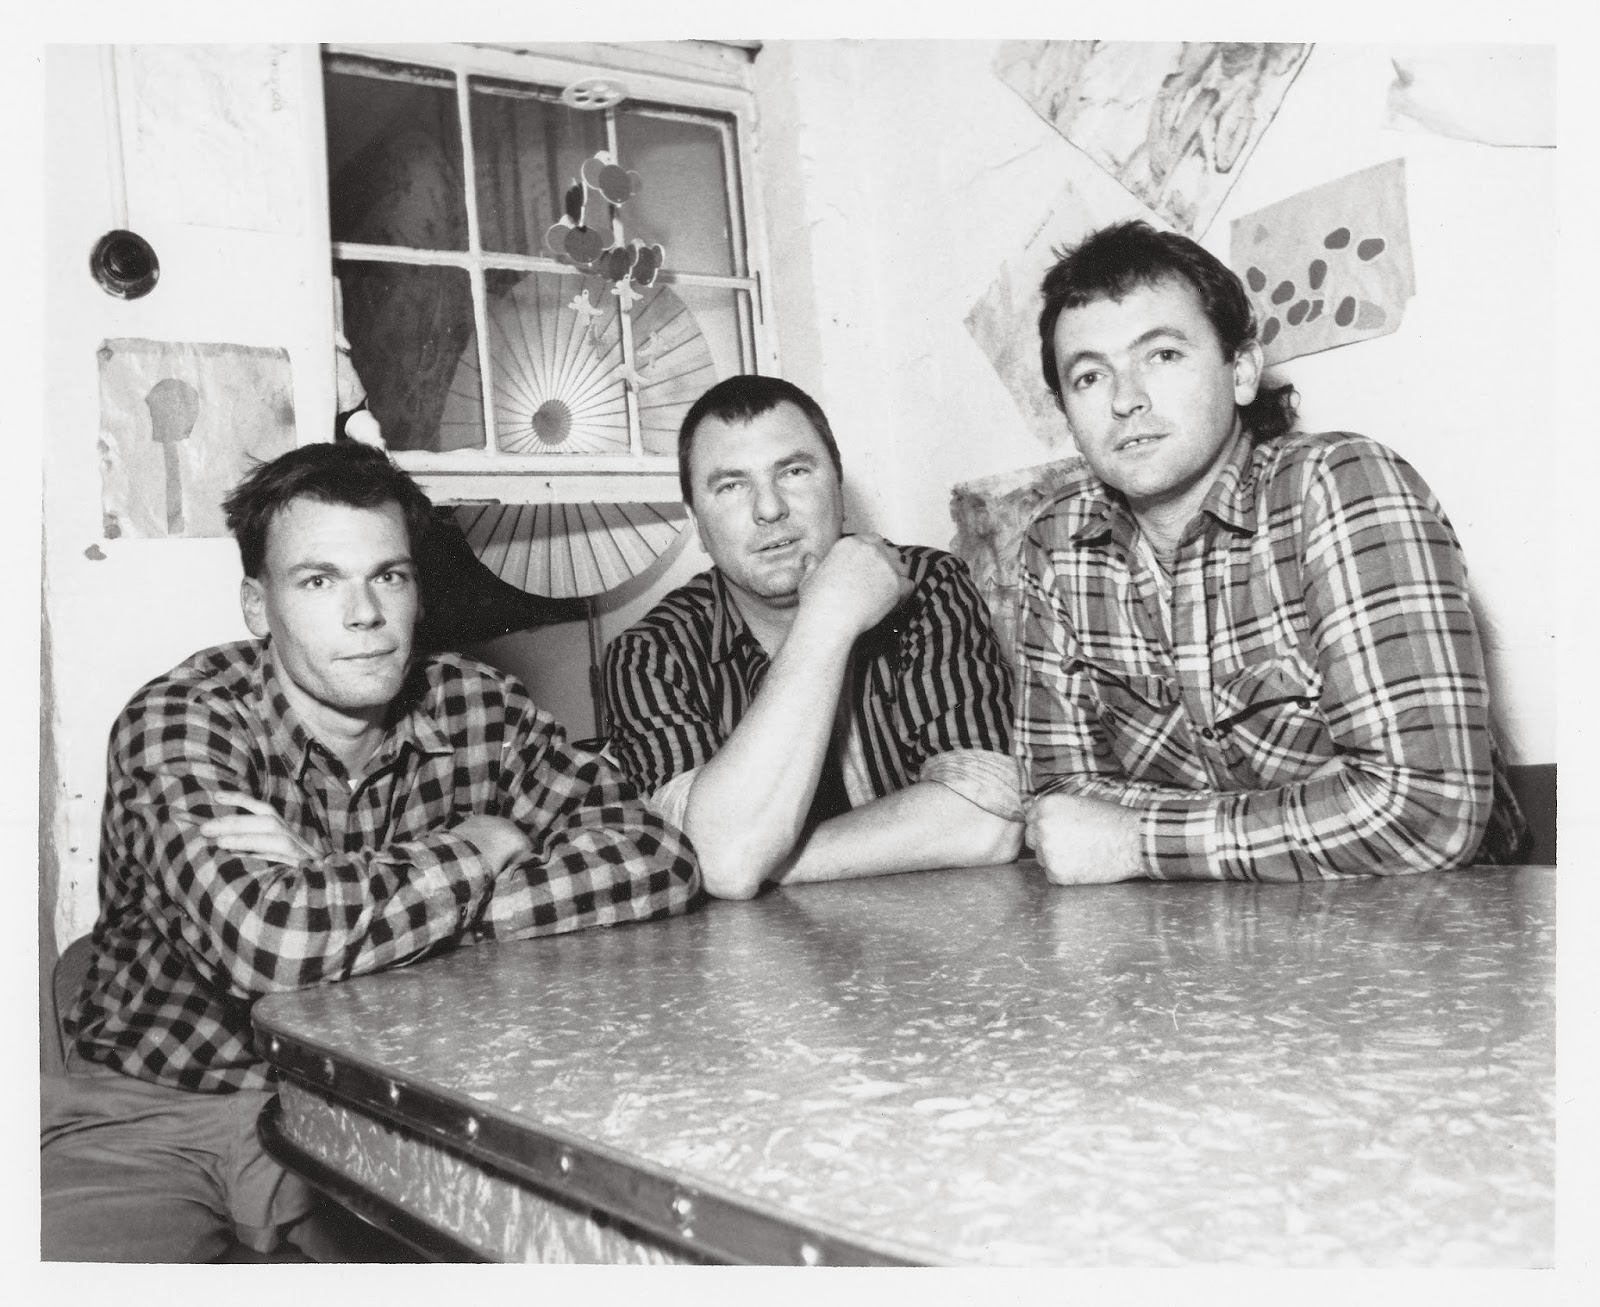 feedtime was an Australian post-punk rock band formed in Sydney in 1979.  The band's name is stylised with a lowercase 'f'. The members were credited  by ...